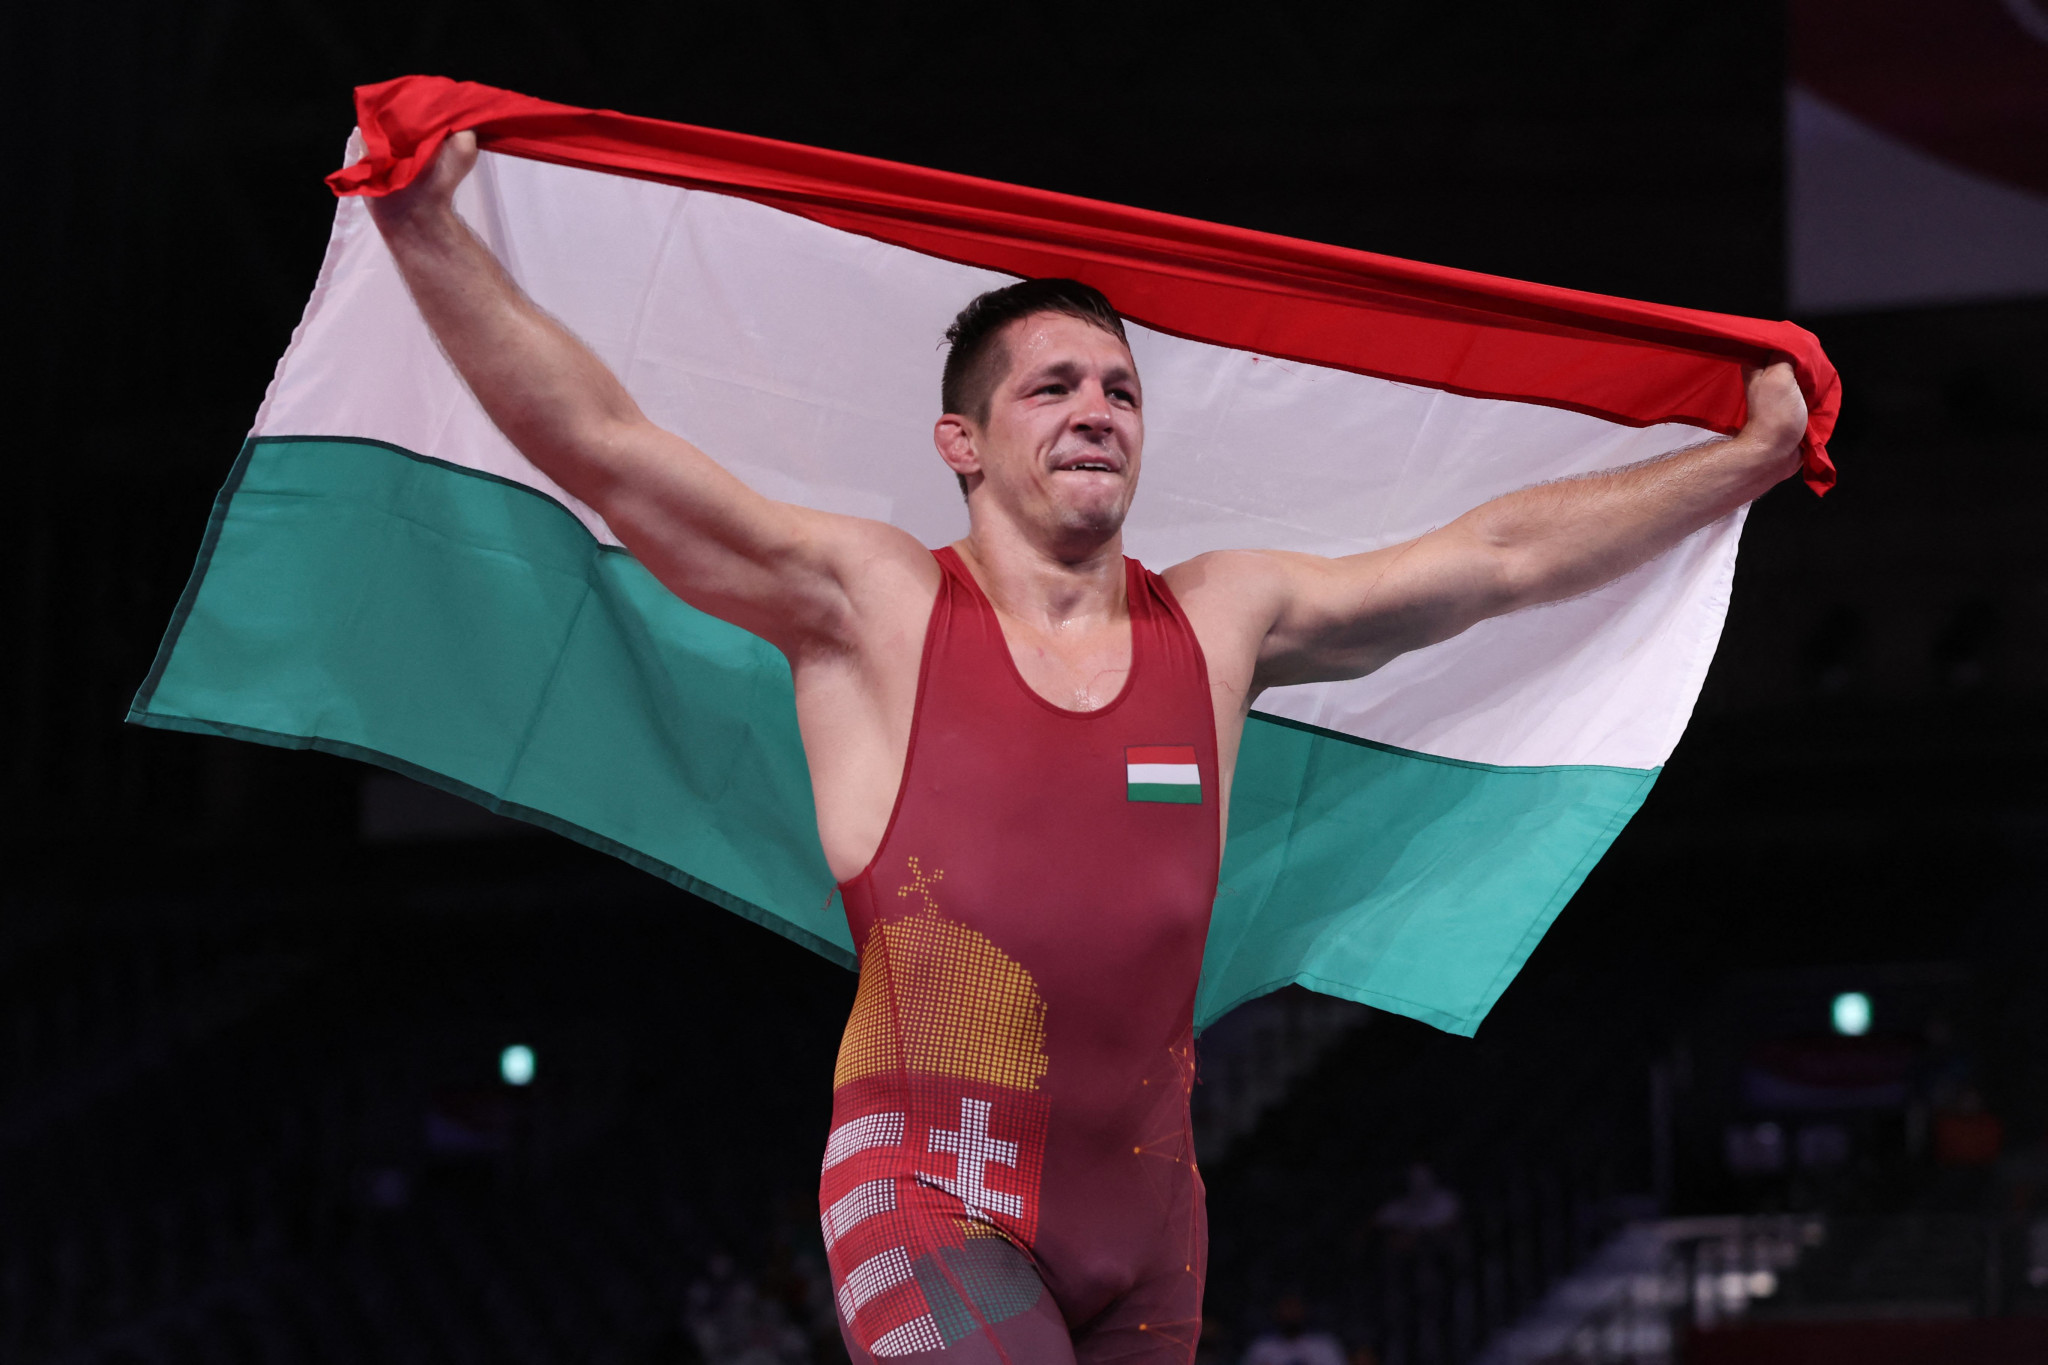 Trio of world champions add Olympic gold on second night of wrestling finals at Tokyo 2020